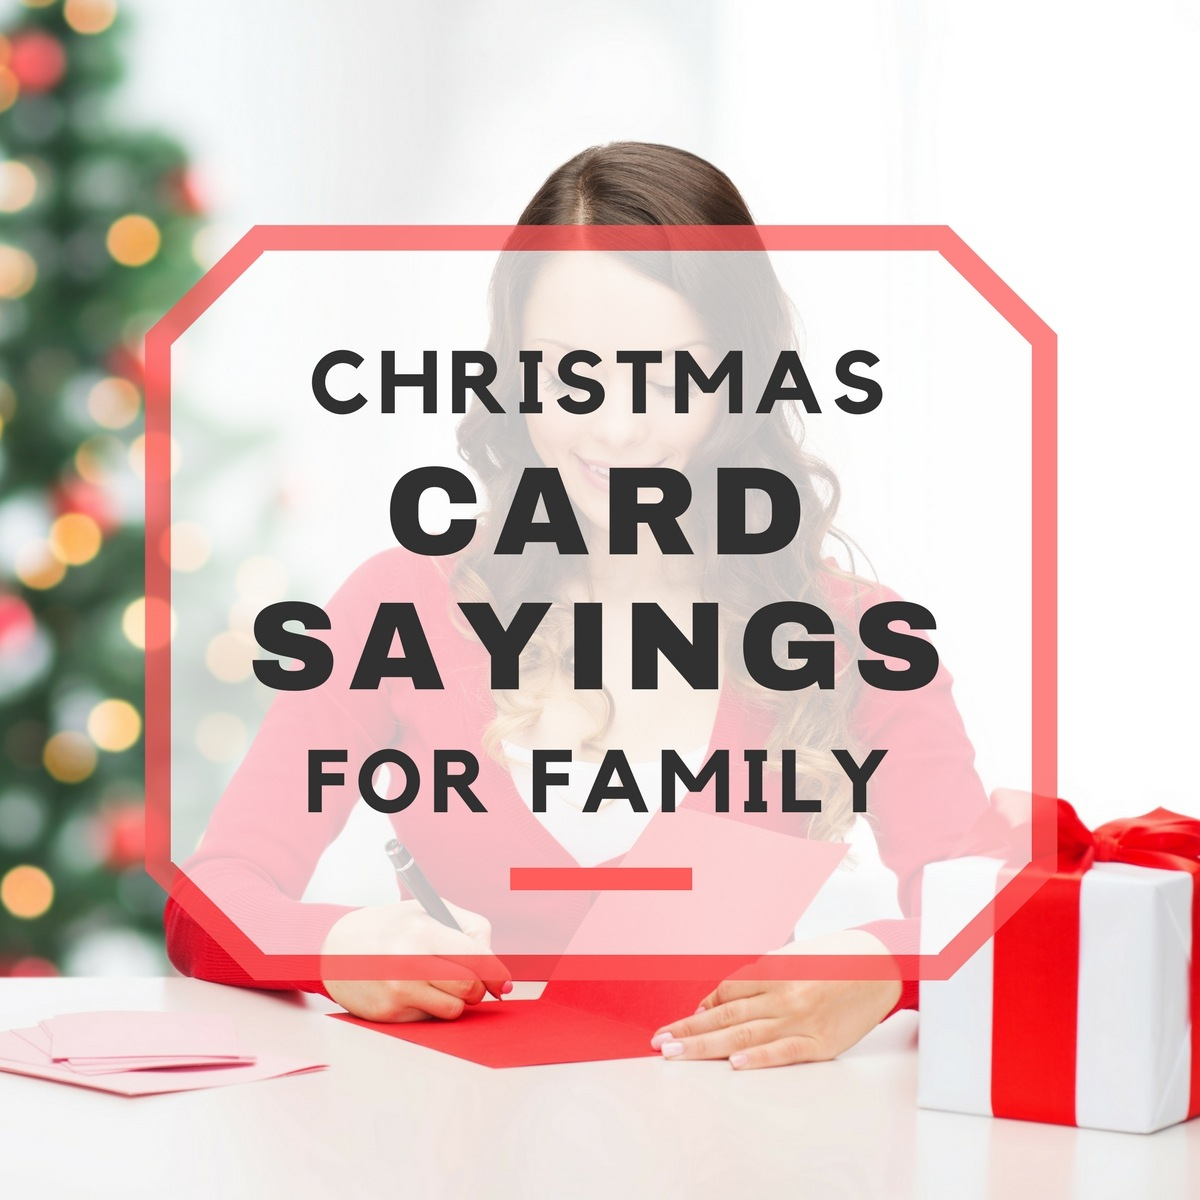 Christmas Quotes For Cards: 25 Christmas Card Sayings For Family